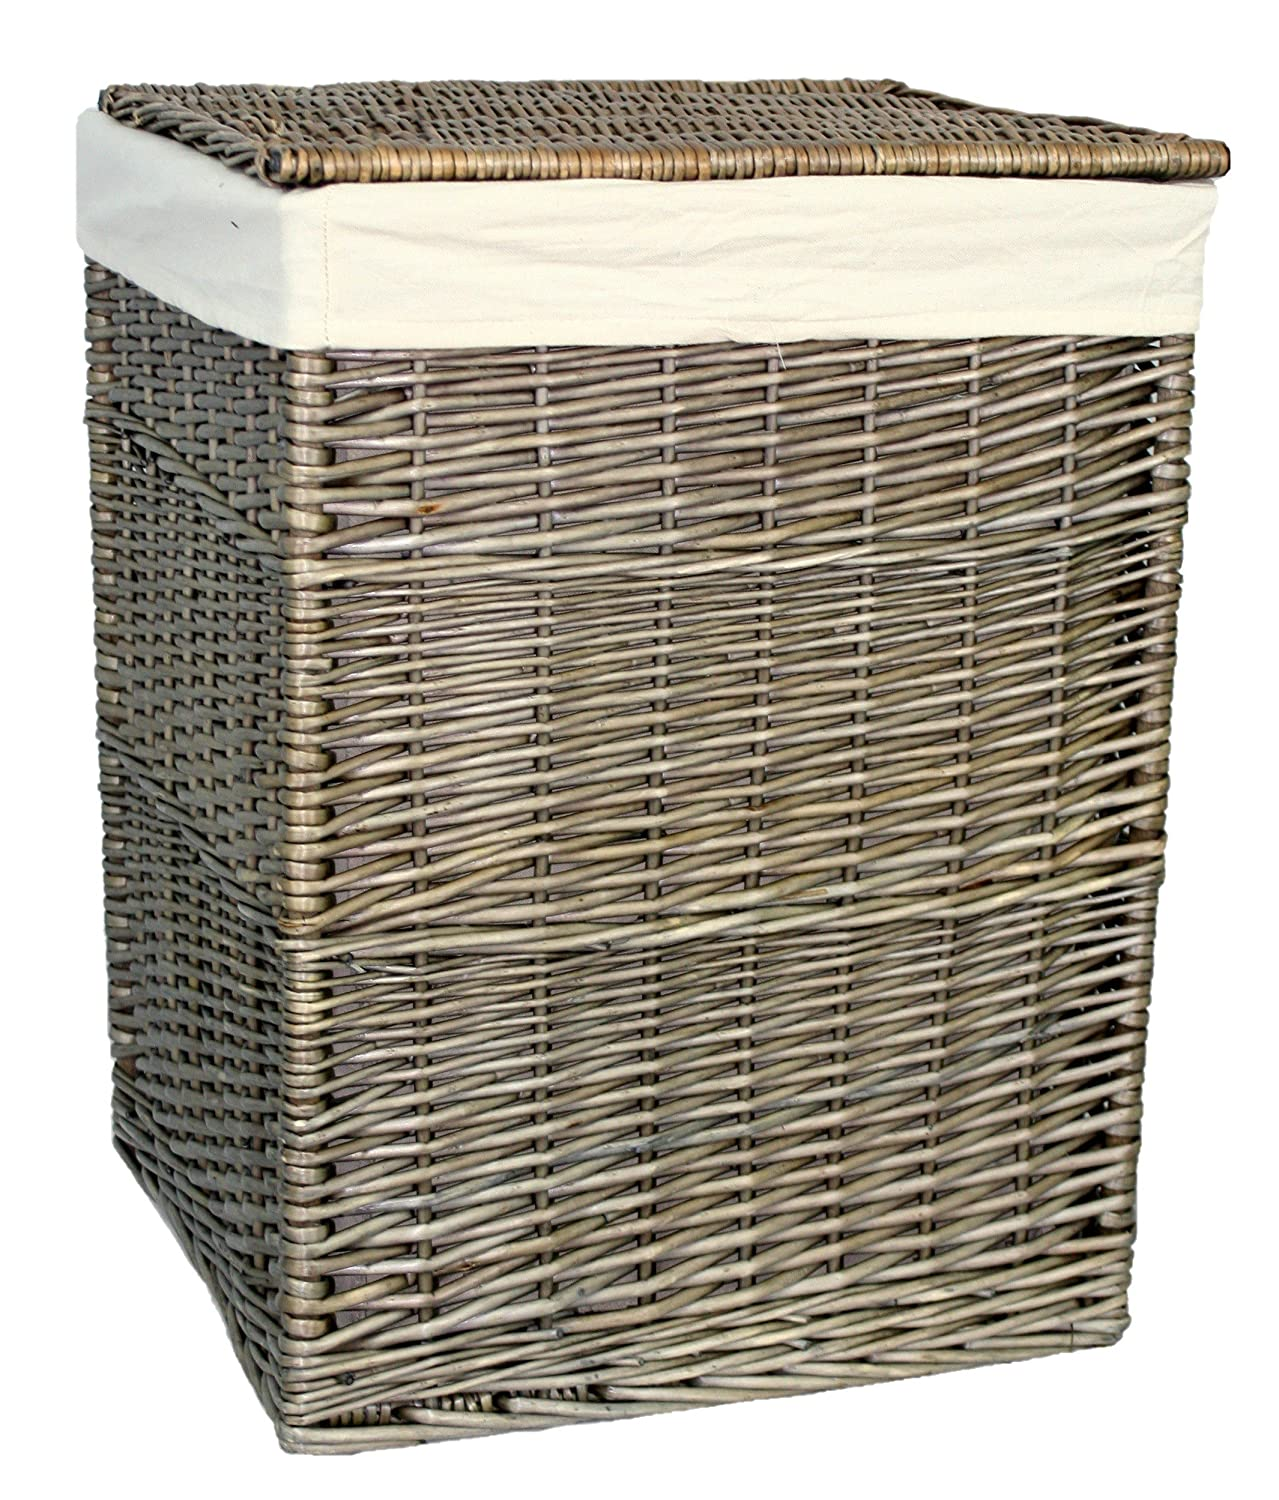 Red Hamper Antique Wash Square Laundry Basket, Wicker, Brown, 61 x 46 x 46 cm H022 2